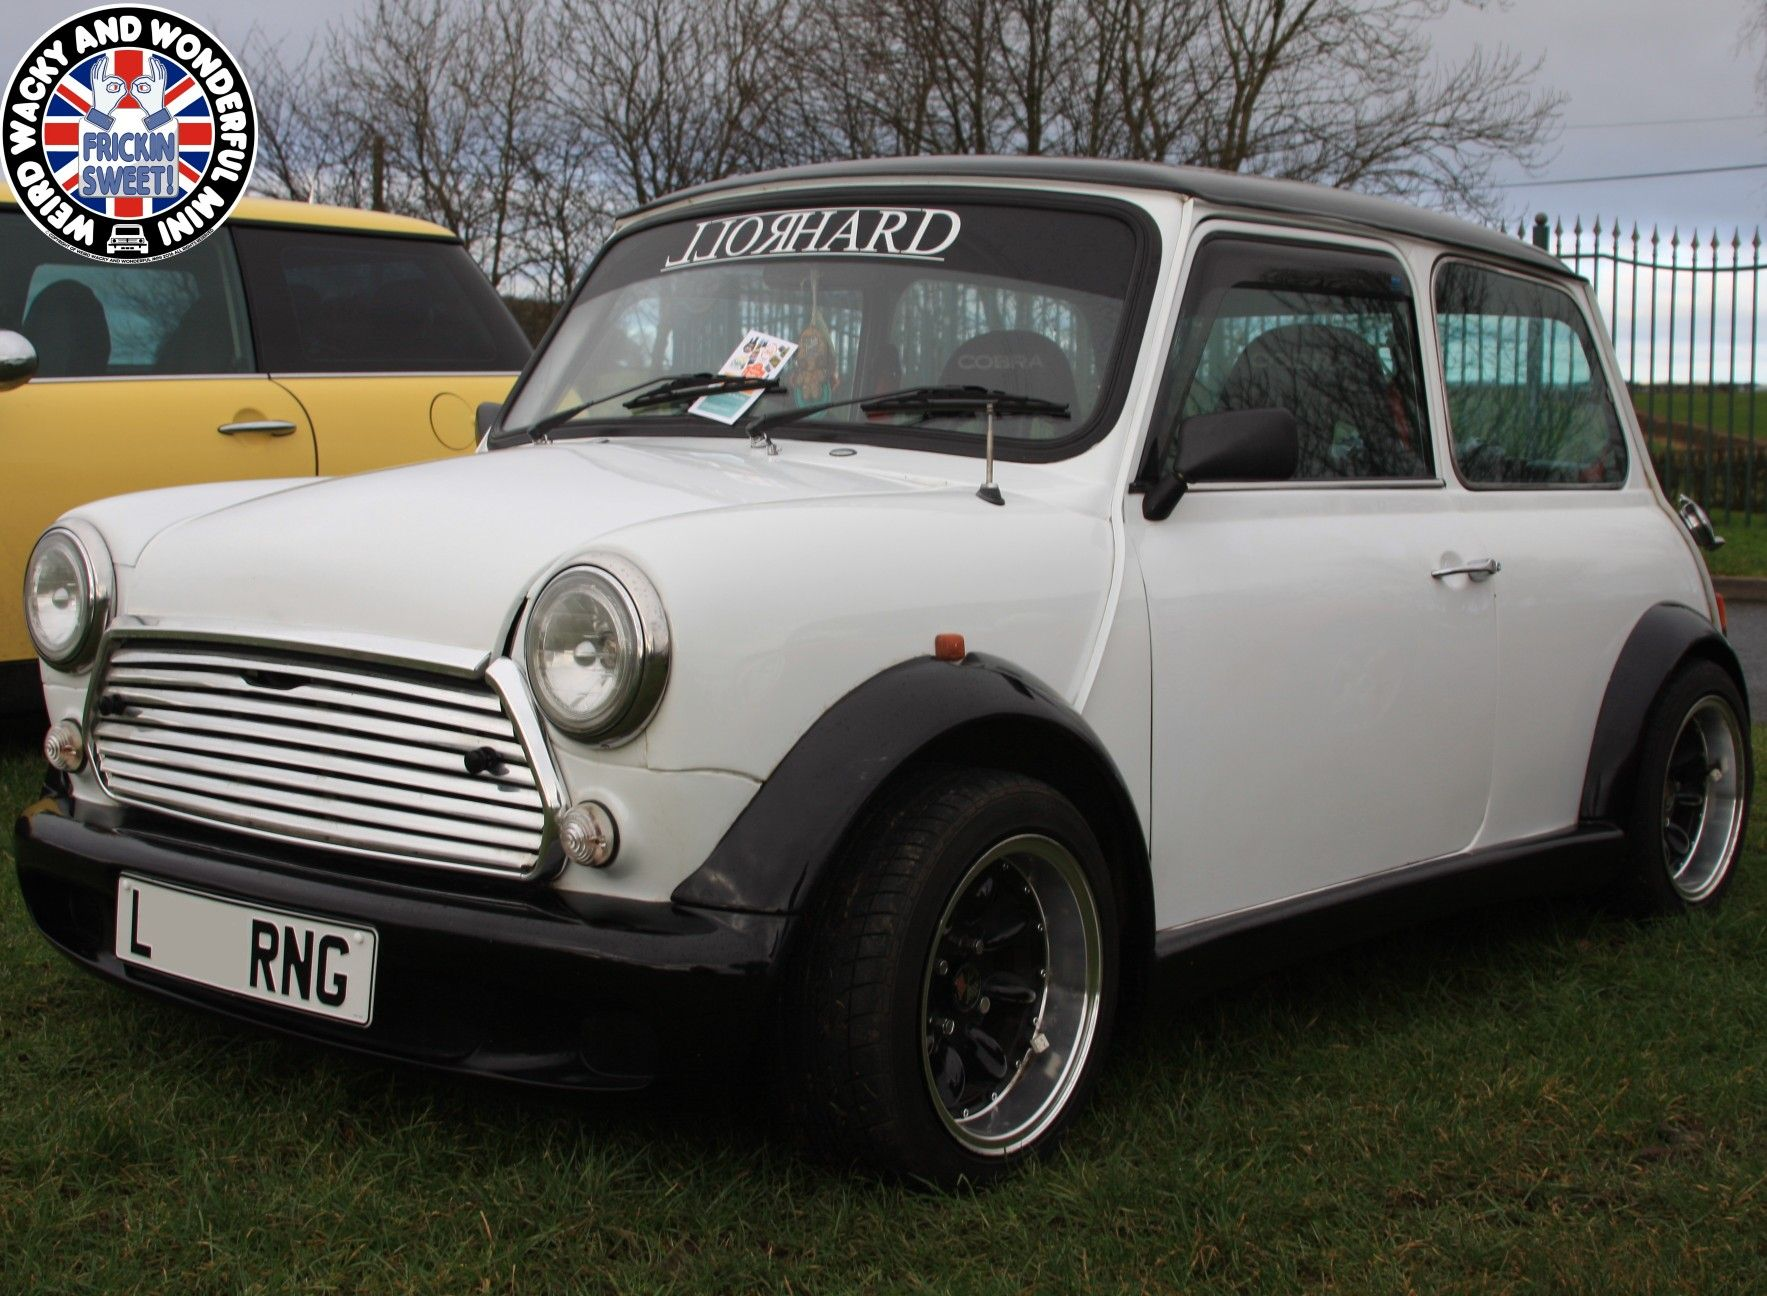 e4c5bdc90ef9 That s a sweet looking  WideArchedWednesday Black n White Mini. Another  crackin Road Stance.  mini  classicmini  minisprint  minicooper   minicoopers ...